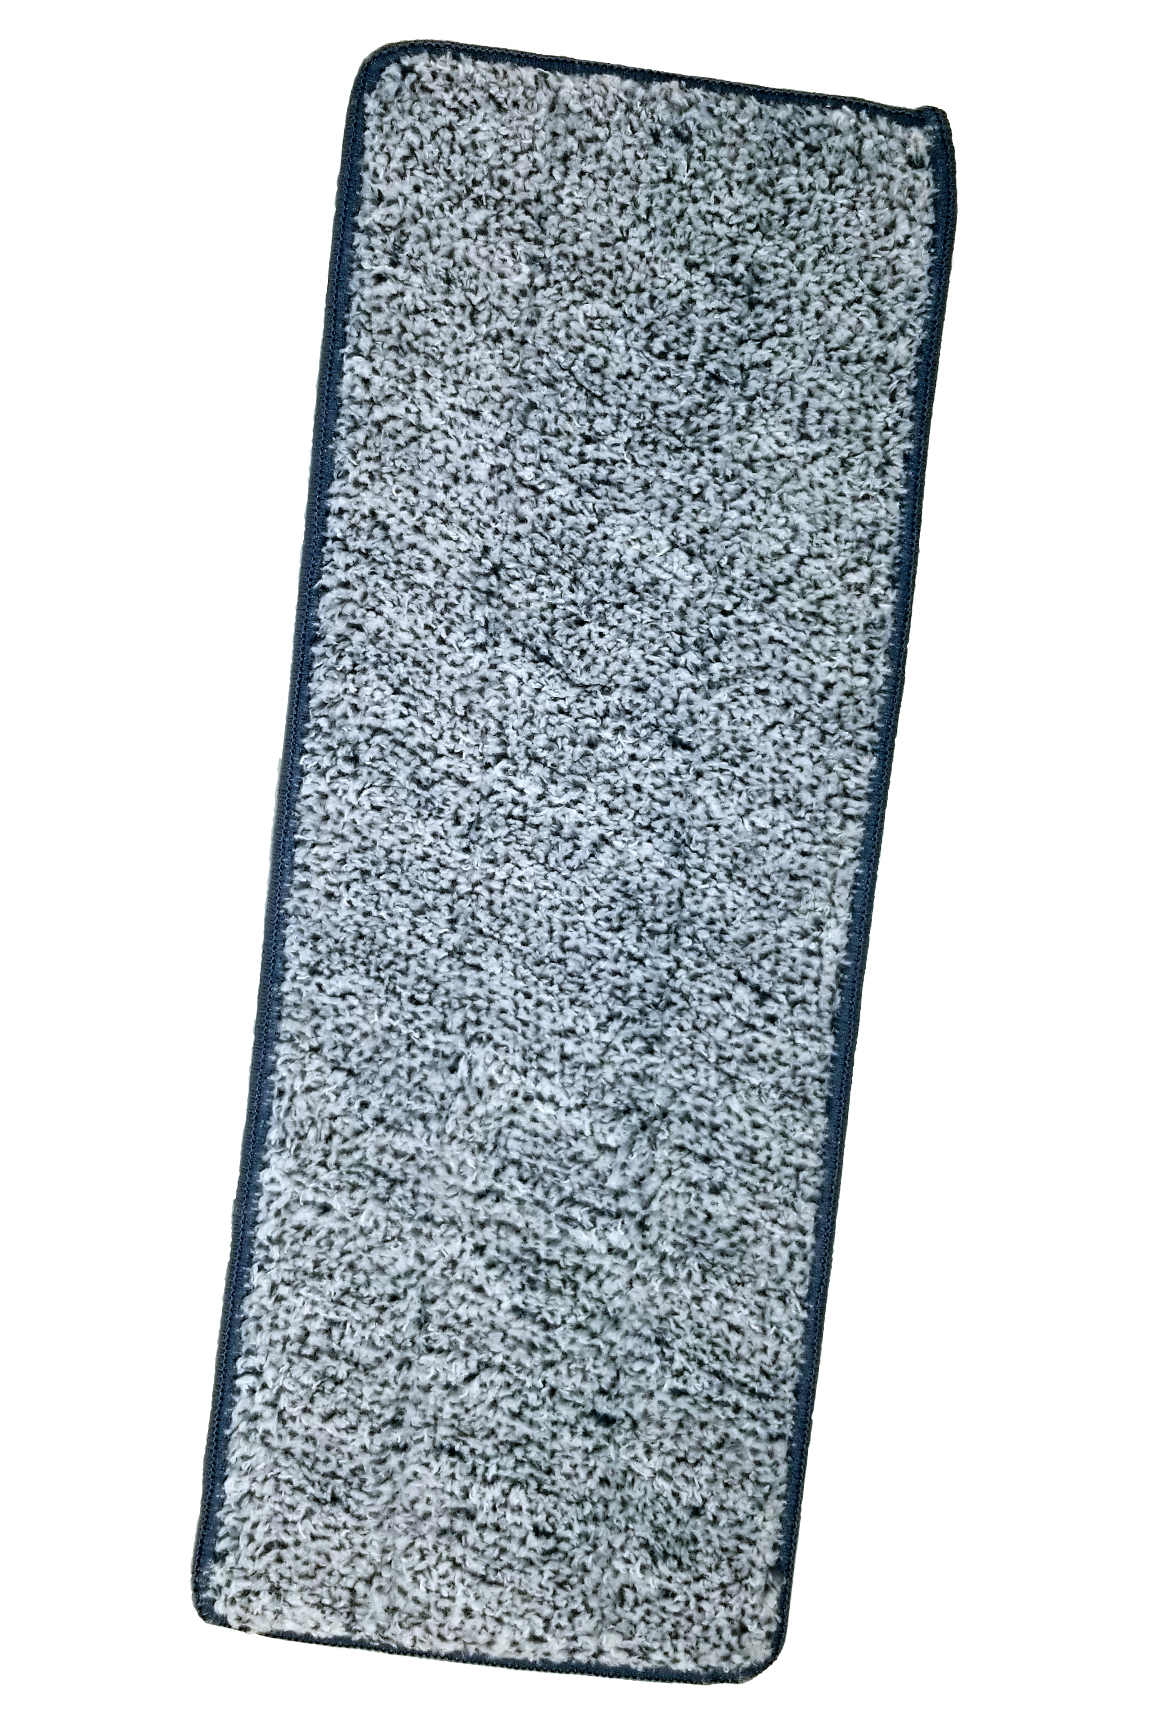 12 Inch Wet And Dry Mop Pad